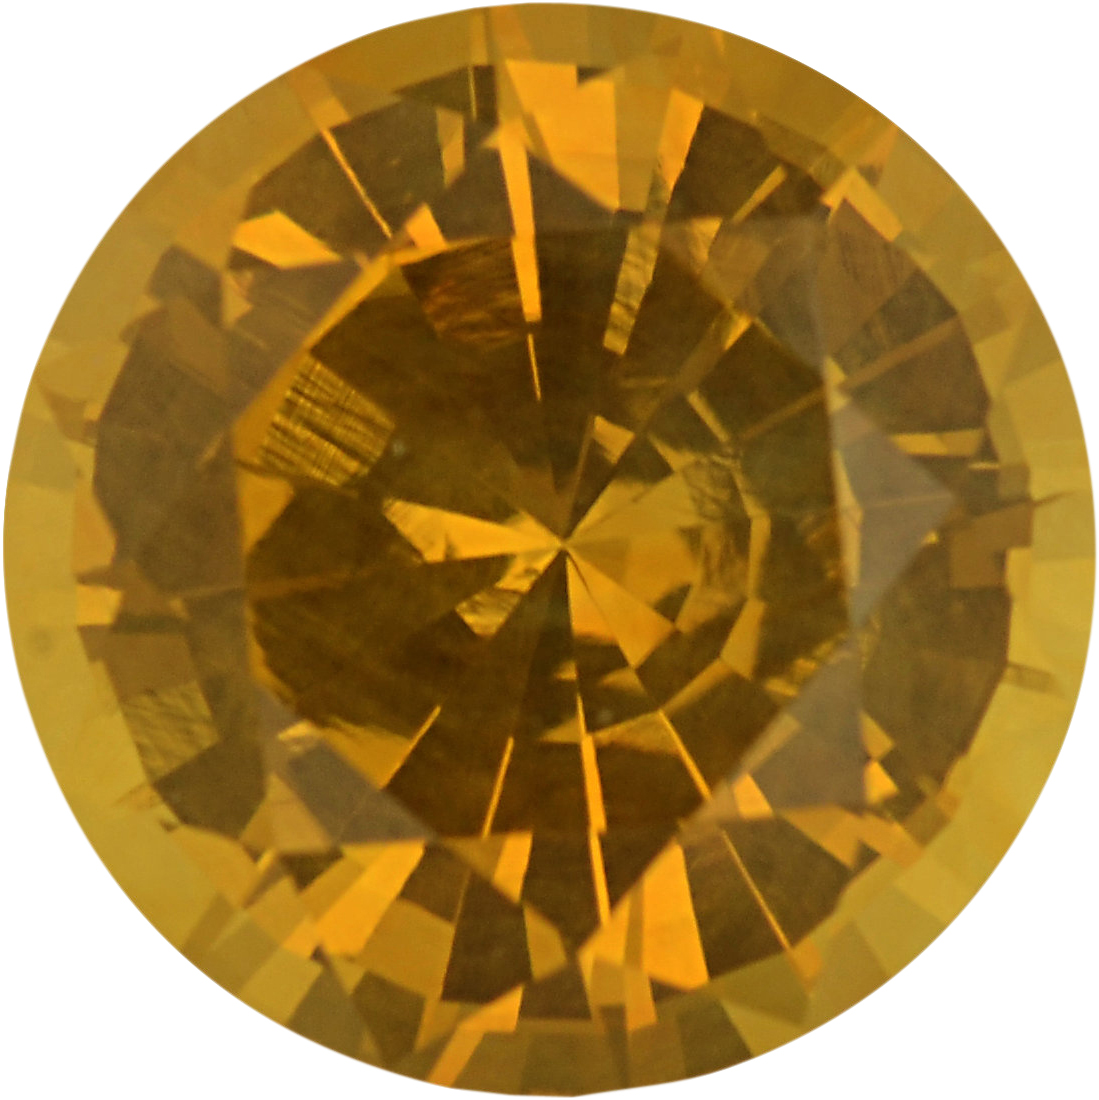 Stunning Sapphire Loose Gem in Round Cut, Light Orangy Yellow, 6.64 mm, 1.38 Carats